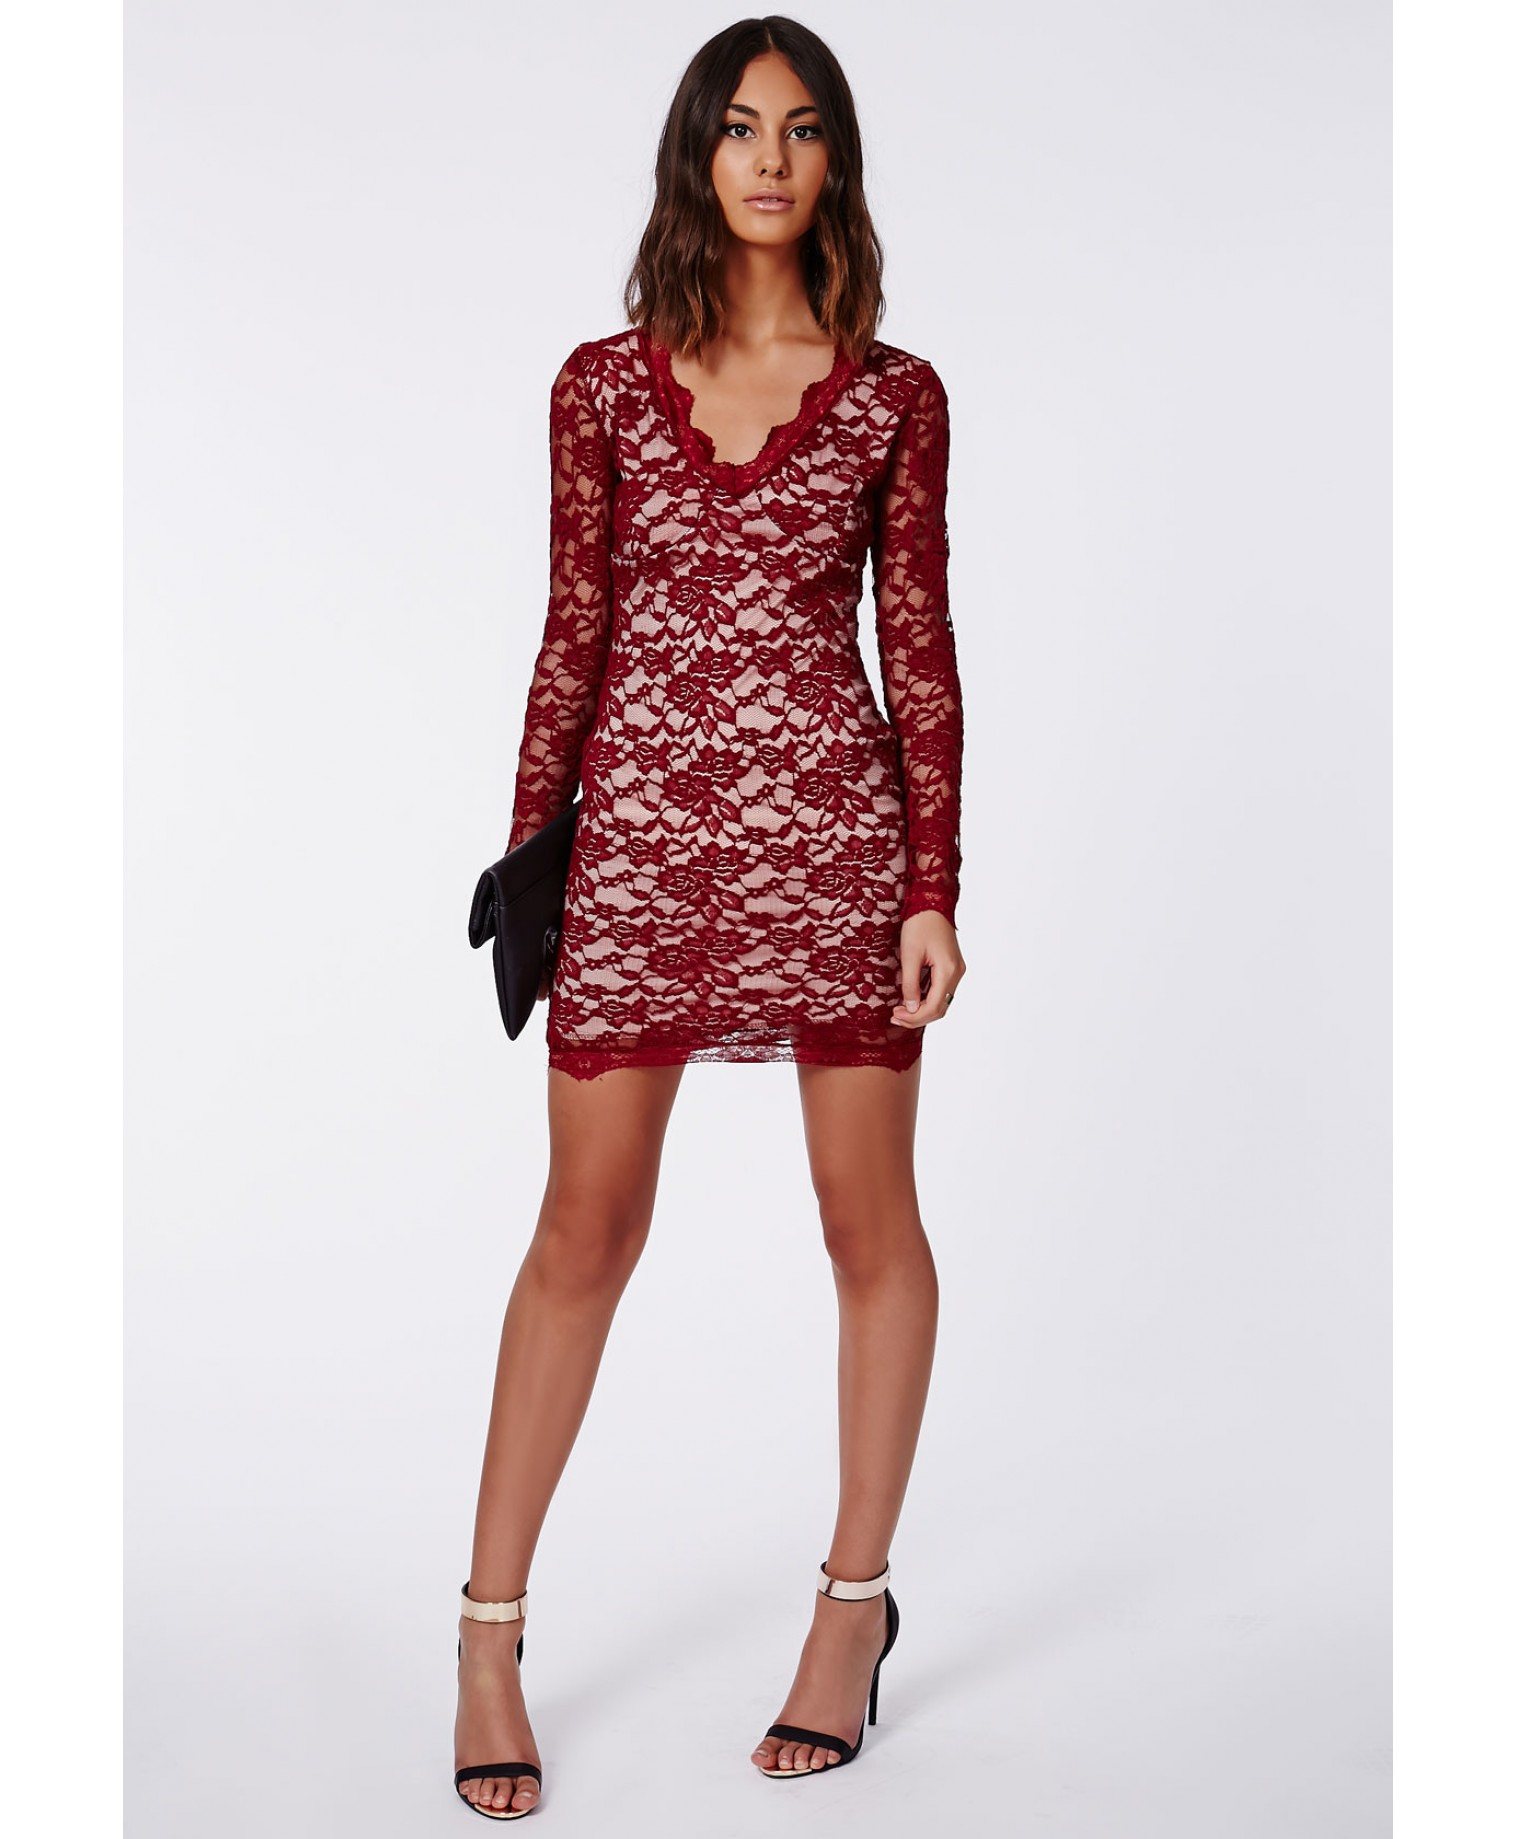 Cherry Lace Long Sleeve Plunge Neck Bodycon Dress Burgundy